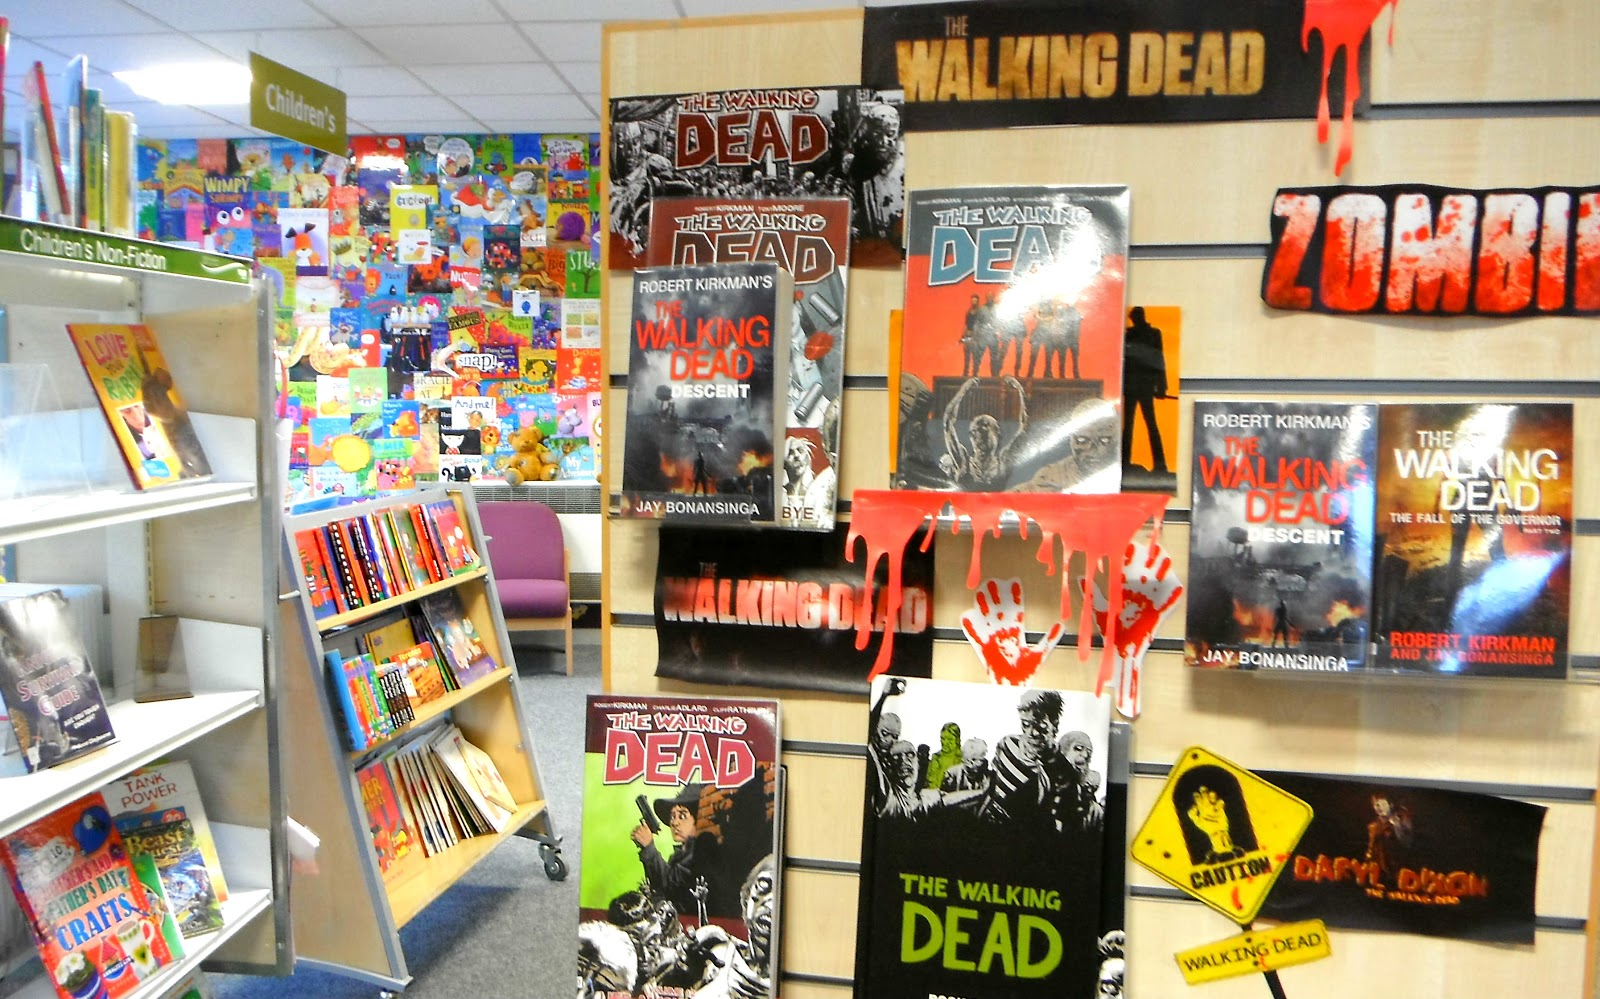 Walking Dead display in Blythe Bridge Library